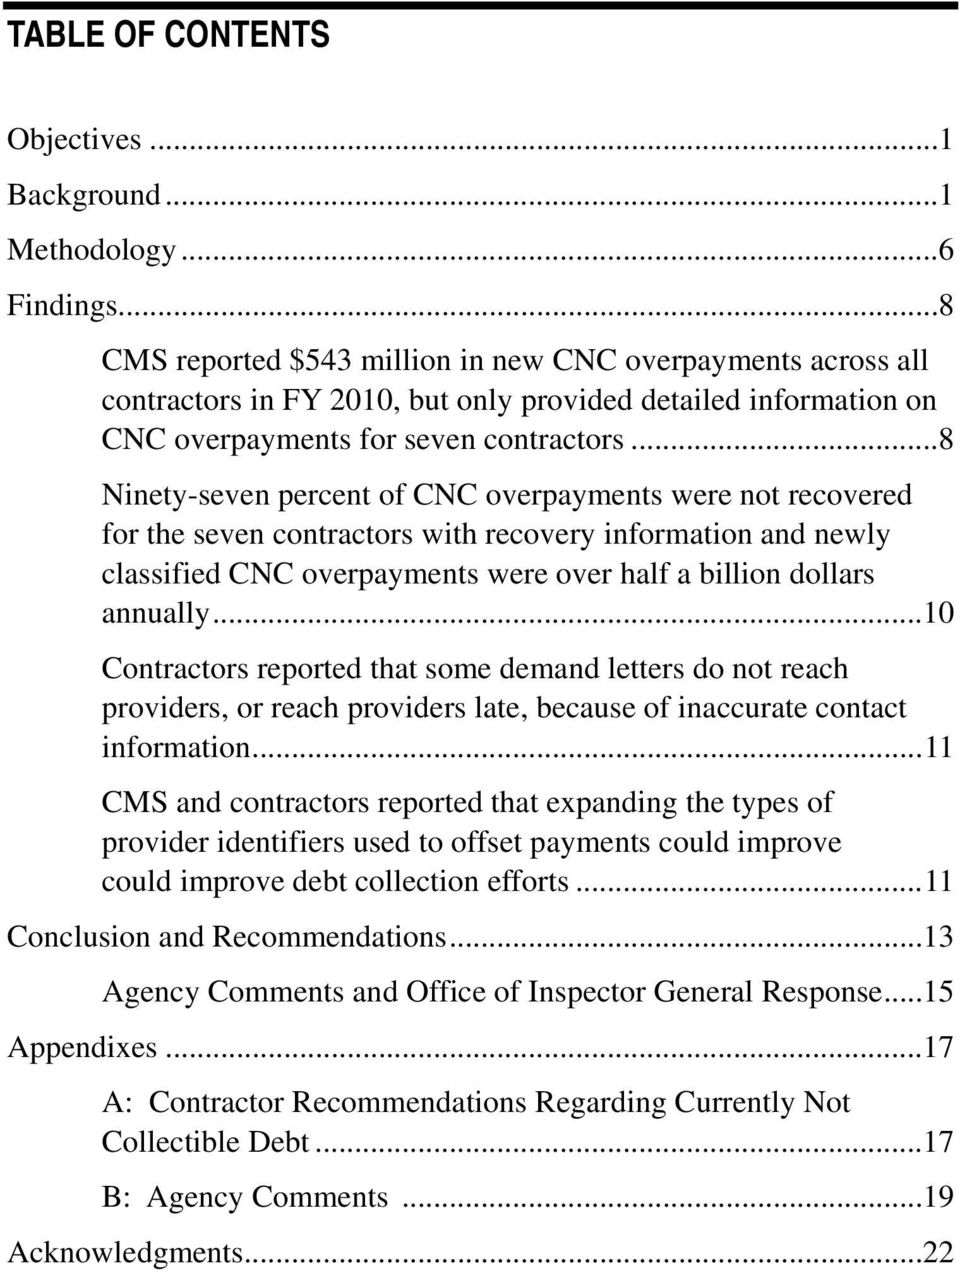 ..8 Ninety-seven percent of CNC overpayments were not recovered for the seven contractors with recovery information and newly classified CNC overpayments were over half a billion dollars annually.